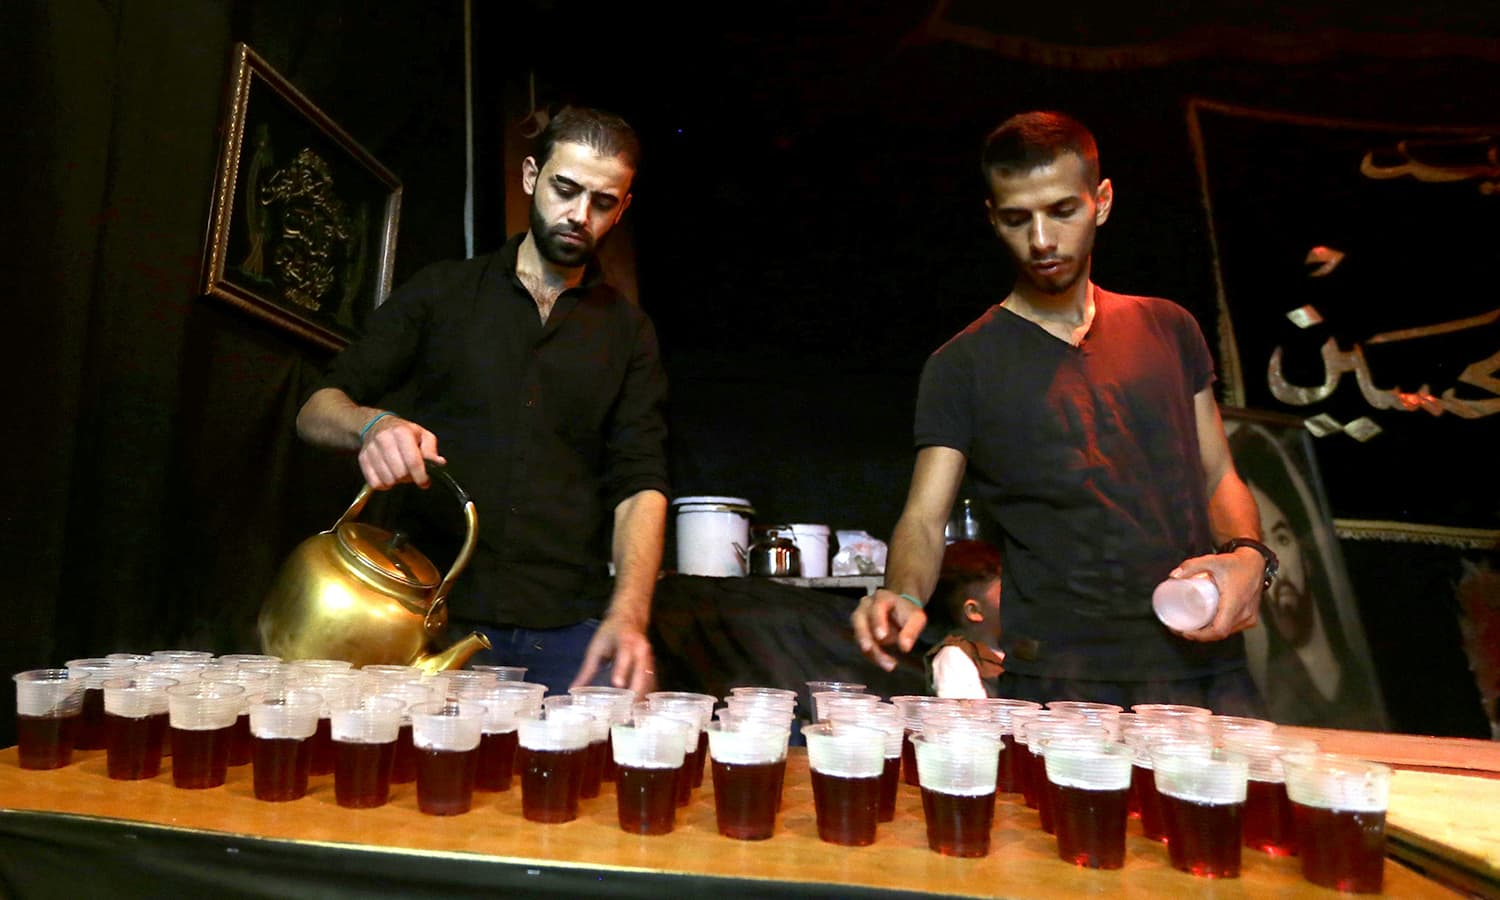 Syrians prepare tea during commemorations marking the mourning period of Ashura in Zine el-Abidine neighbourhood in the capital Damascus. ─ AFP